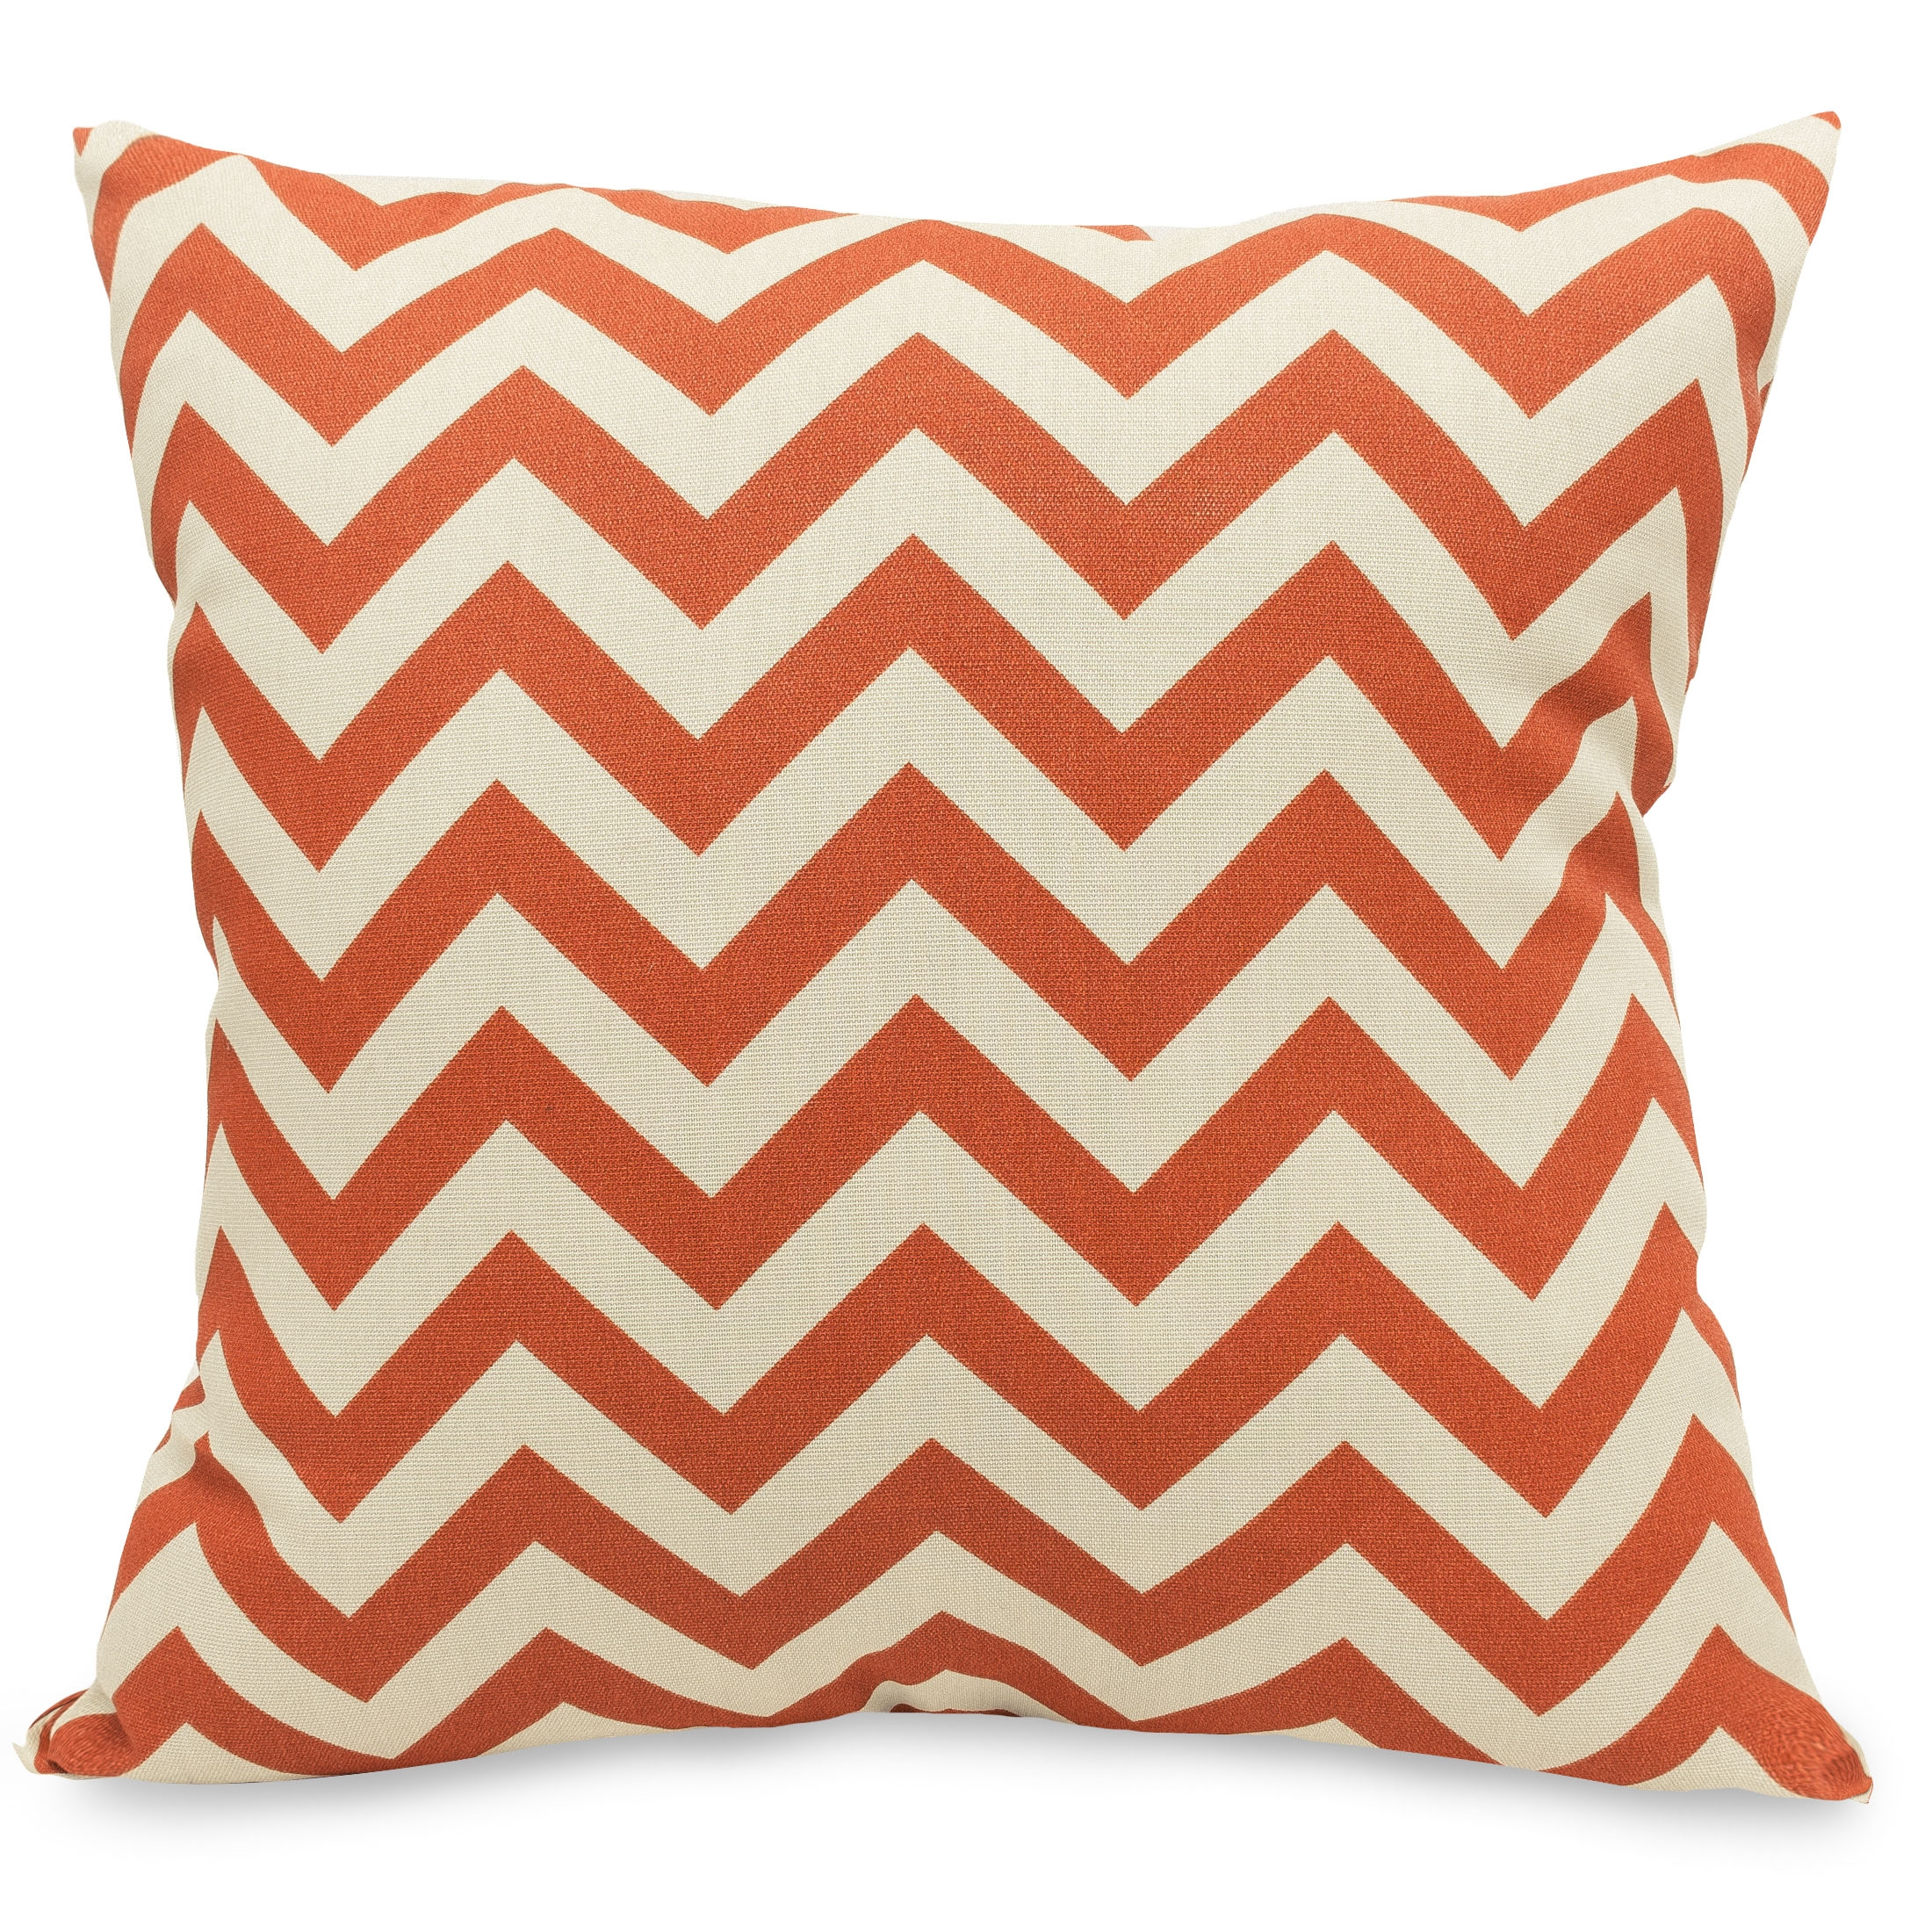 Home Decor: Luxury Sofa Pillows With Elegant Pattern For ...